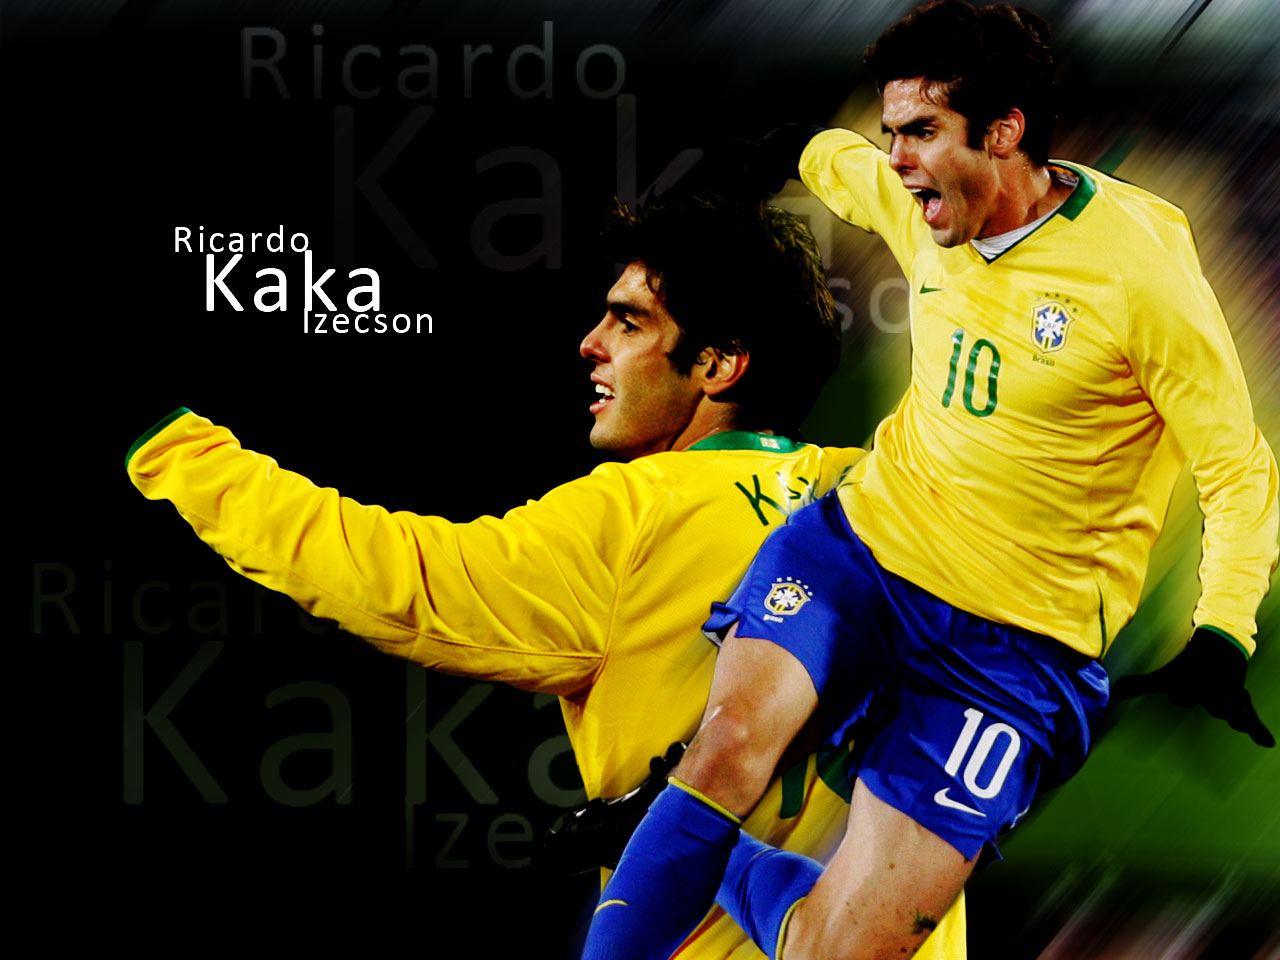 http://2.bp.blogspot.com/-Z7lYMwbMxsg/TmdHOcfJkXI/AAAAAAAAEcY/d_zEVgmZNw8/s1600/Ricardo+kaka+Best+FootBall+Player+Wallpapers2.jpg